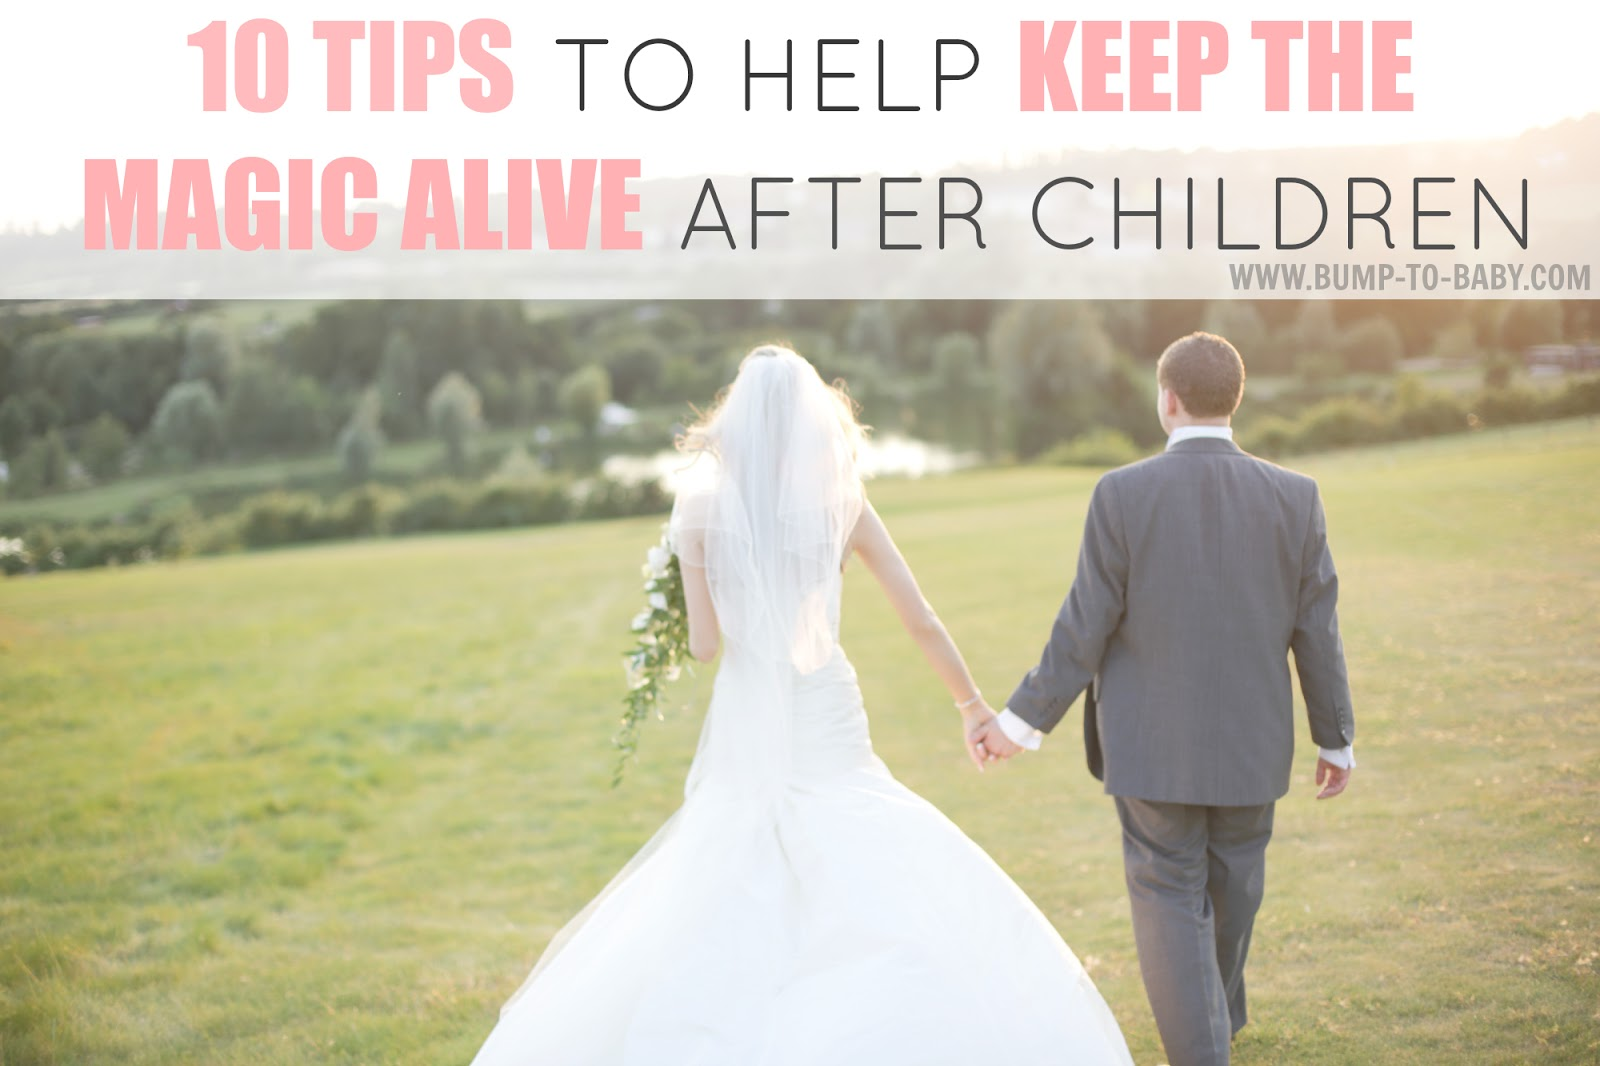 keeping the romance alive, keeping the magic alive after children, keeping relationship alive after childen